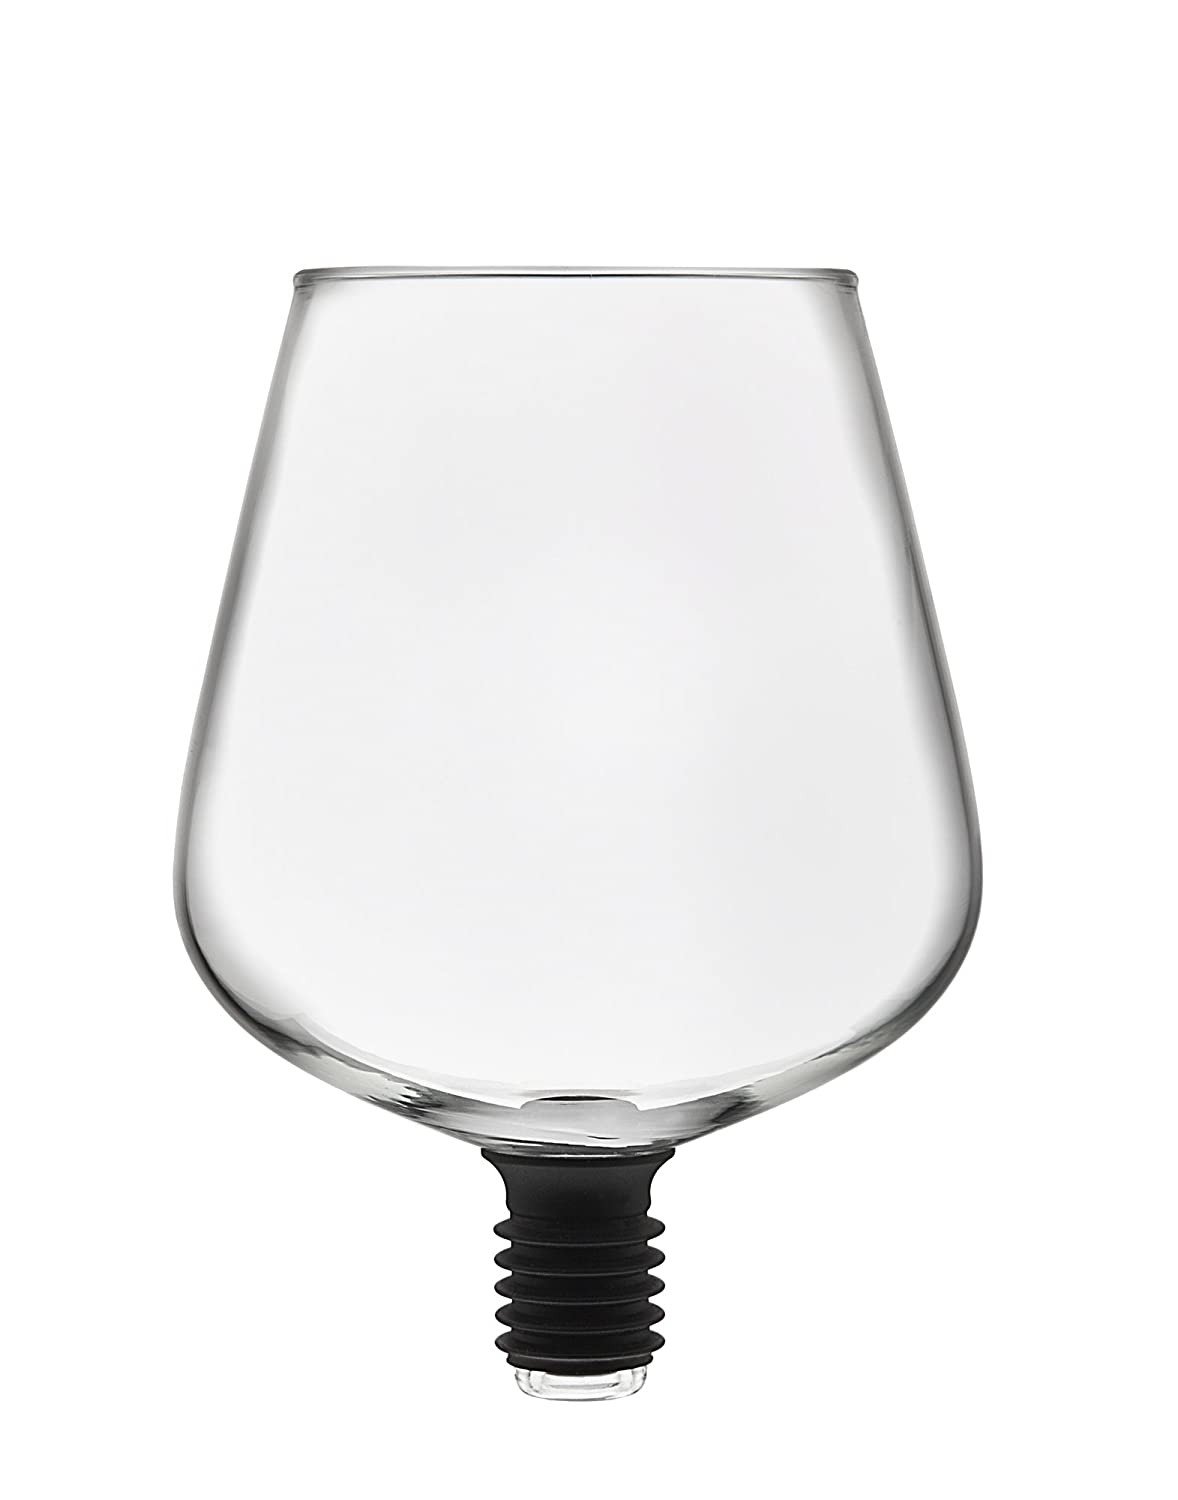 Godinger 22103 ChugMate, Goblet to Drink Straight Wine Glass Bottle Topper, 8 oz, Clear